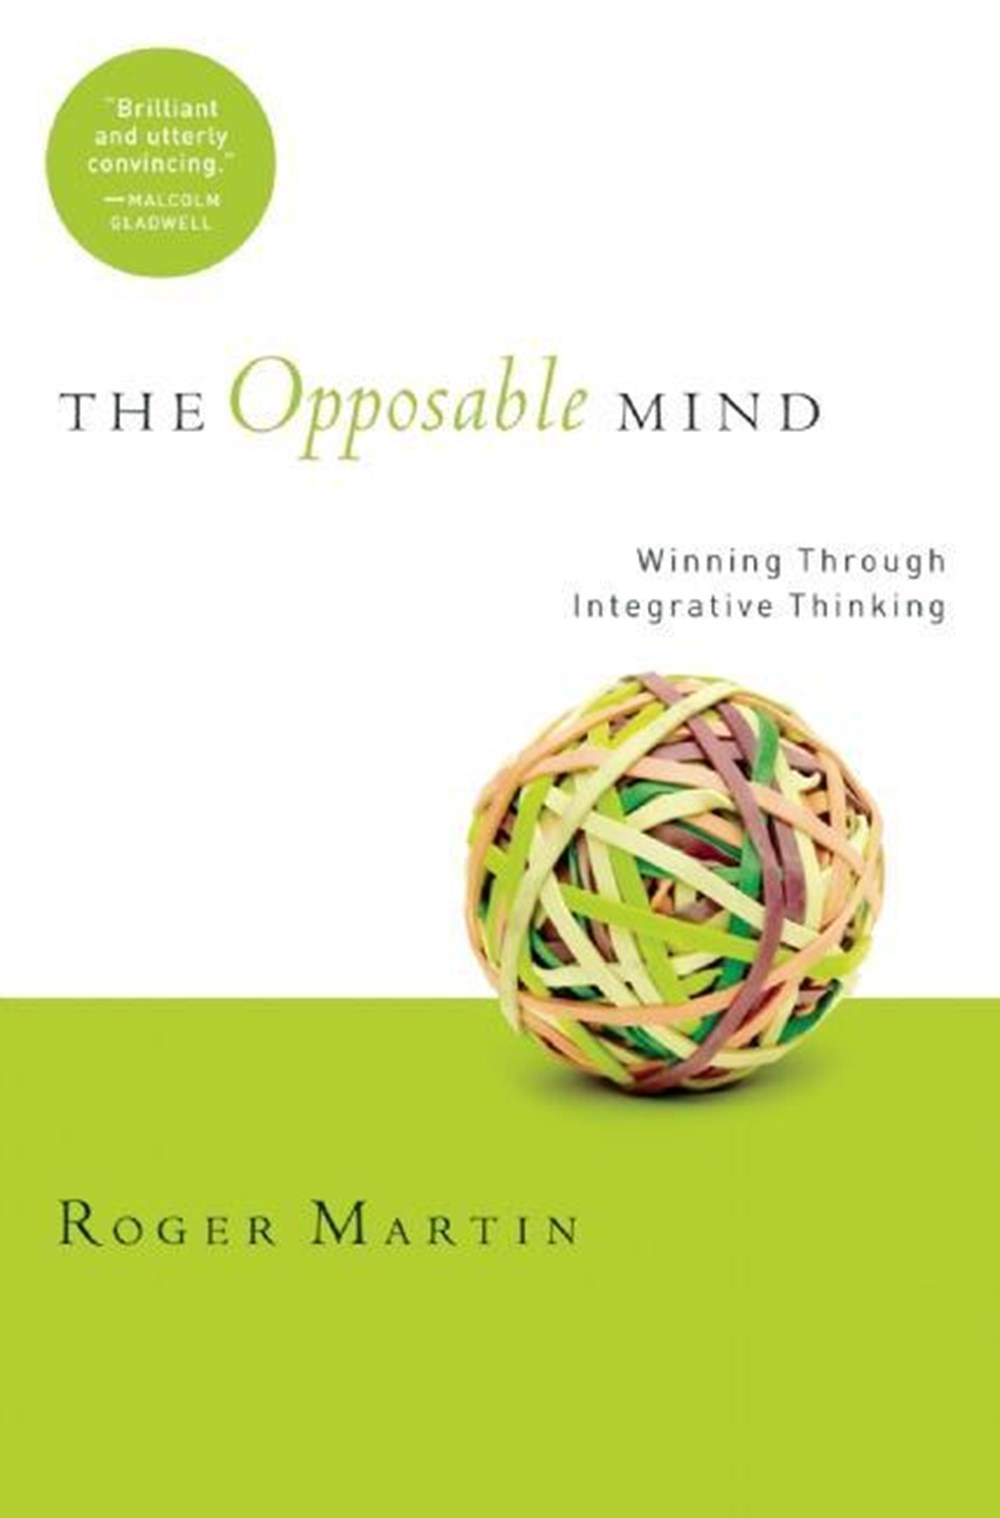 Opposable Mind How Successful Leaders Win Through Integrative Thinking